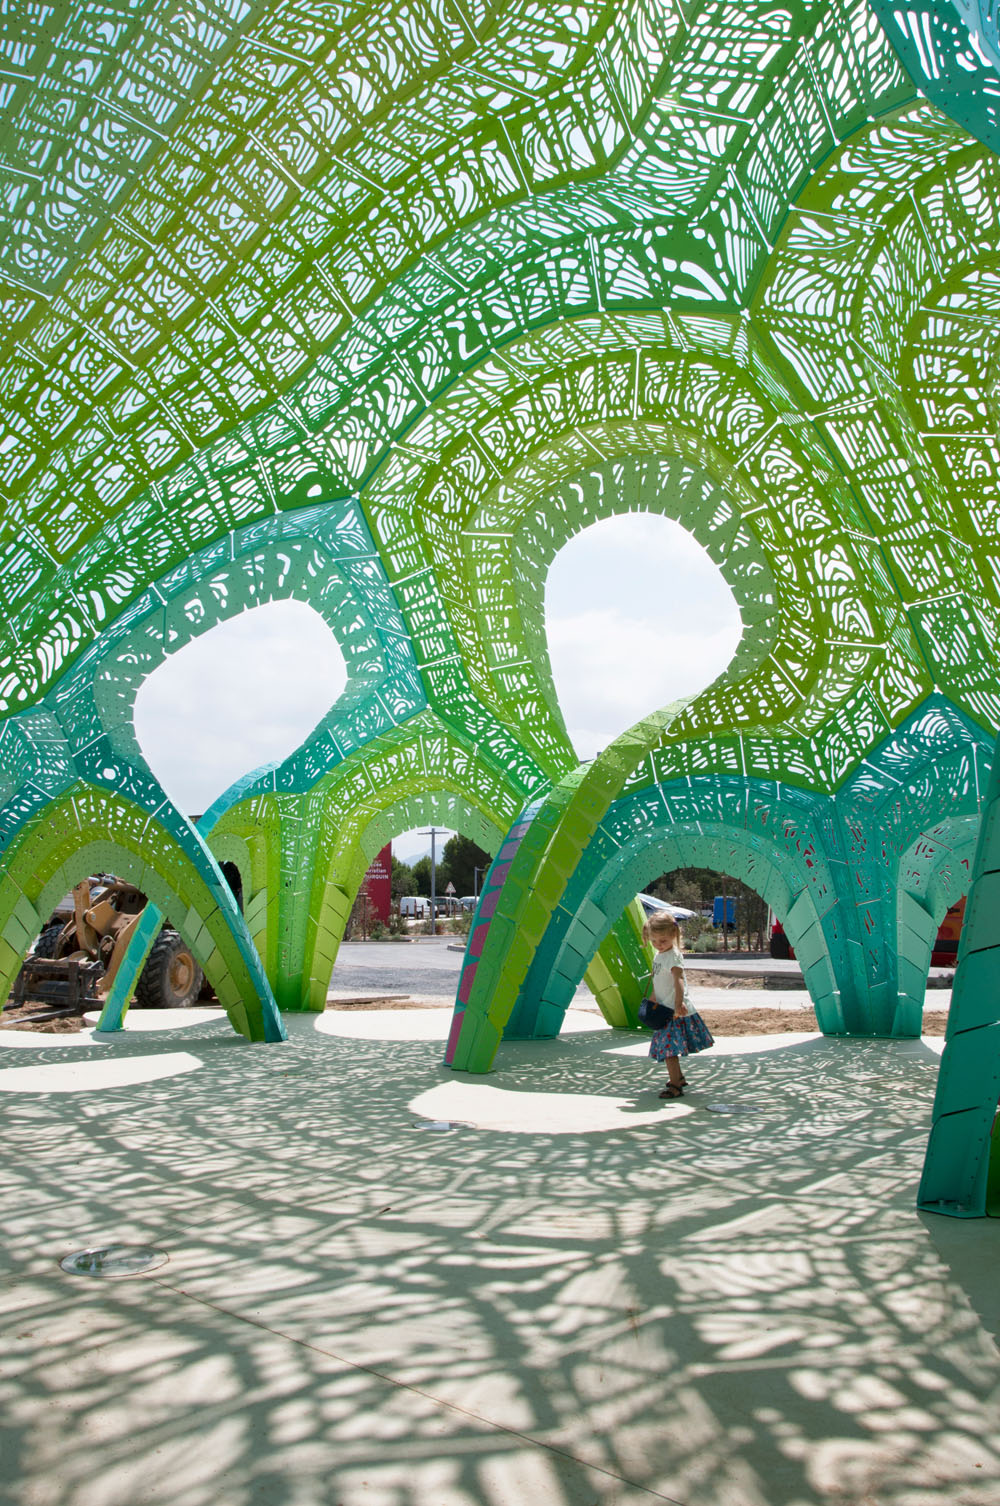 Cool Structures | Design